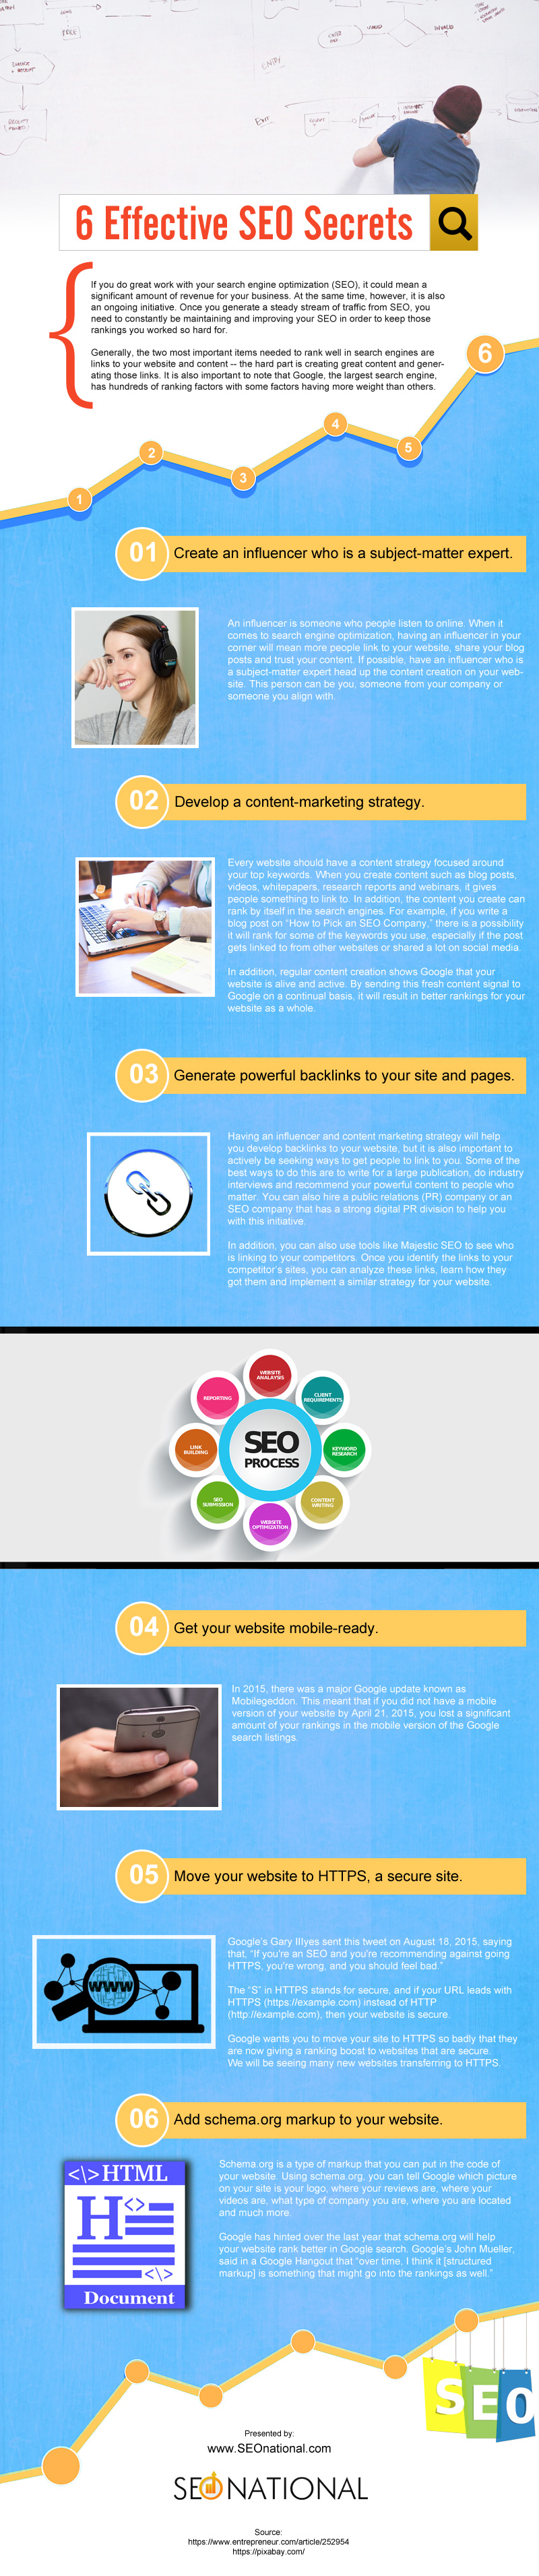 6 Effective SEO Secrets